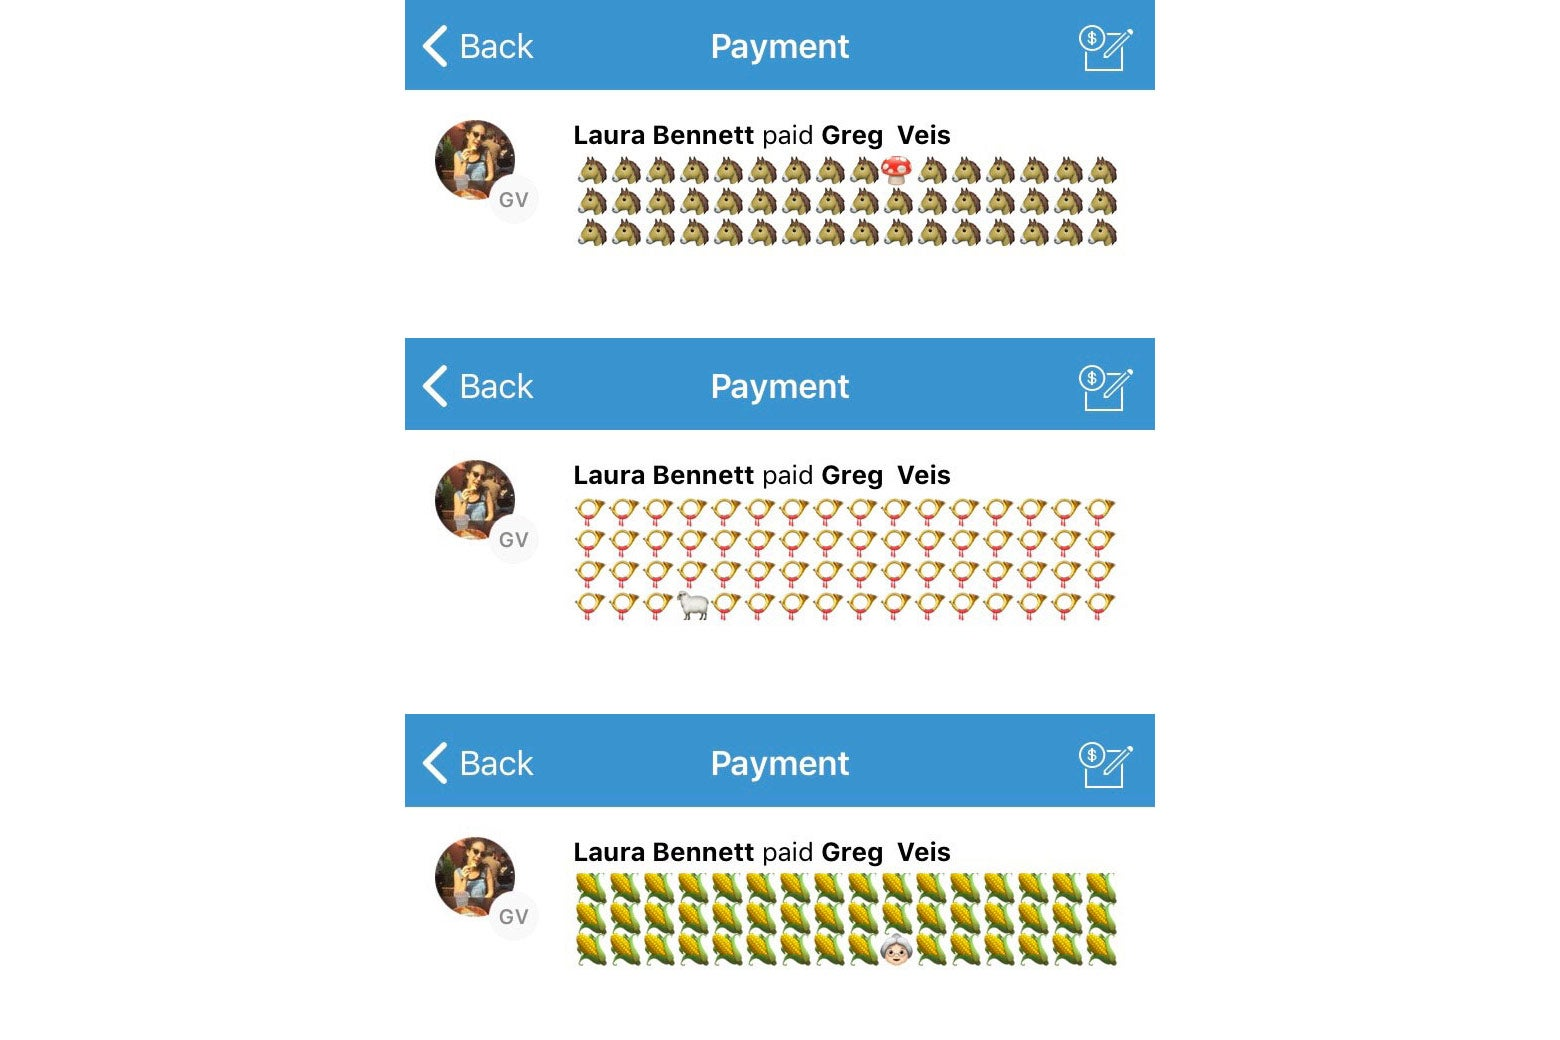 Blocks of emojis with one single emoji that's different from the rest.